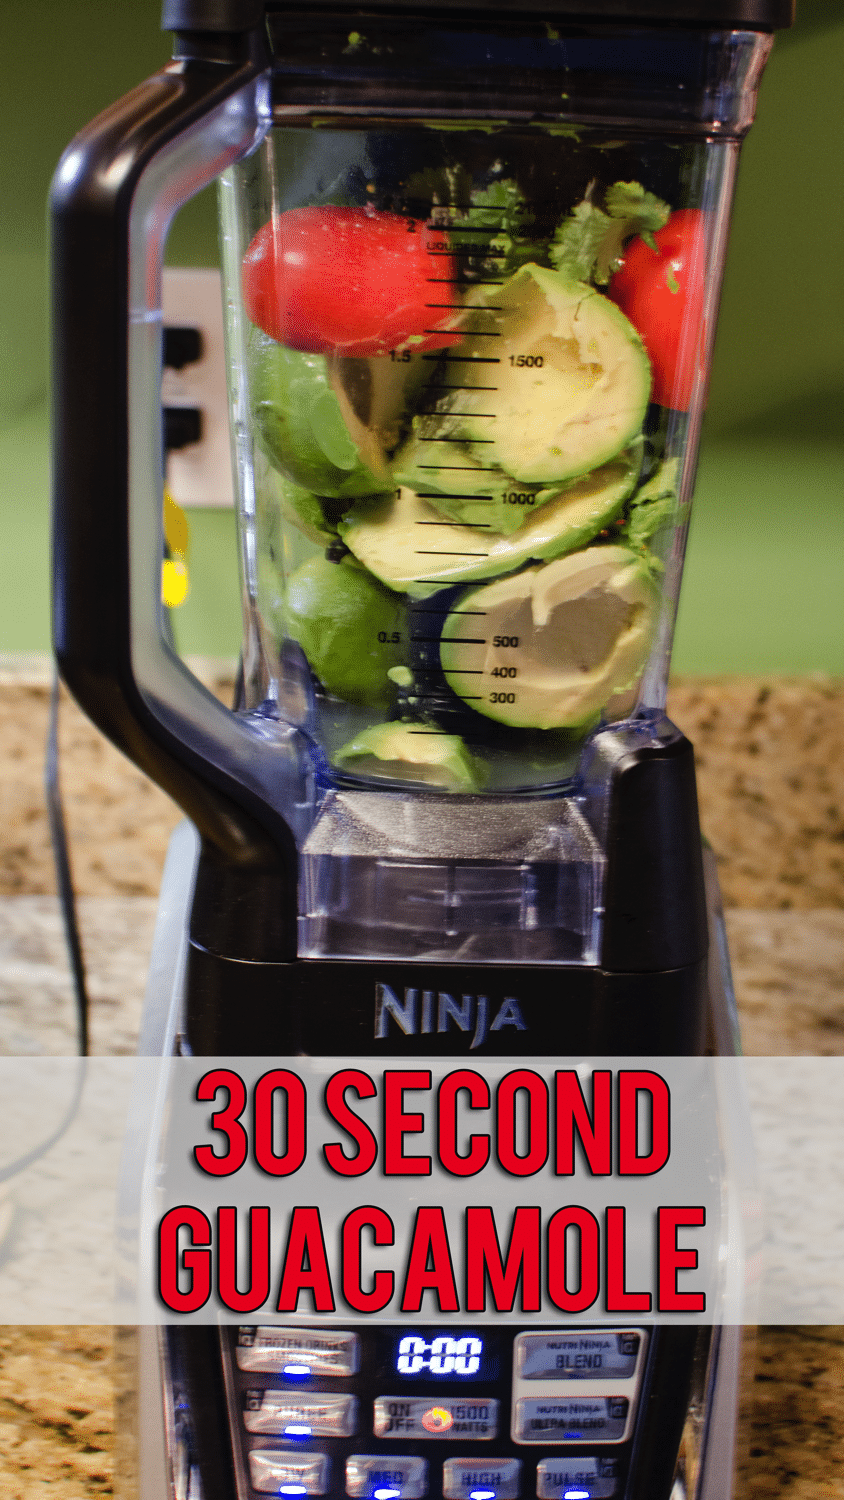 30 second guacamole